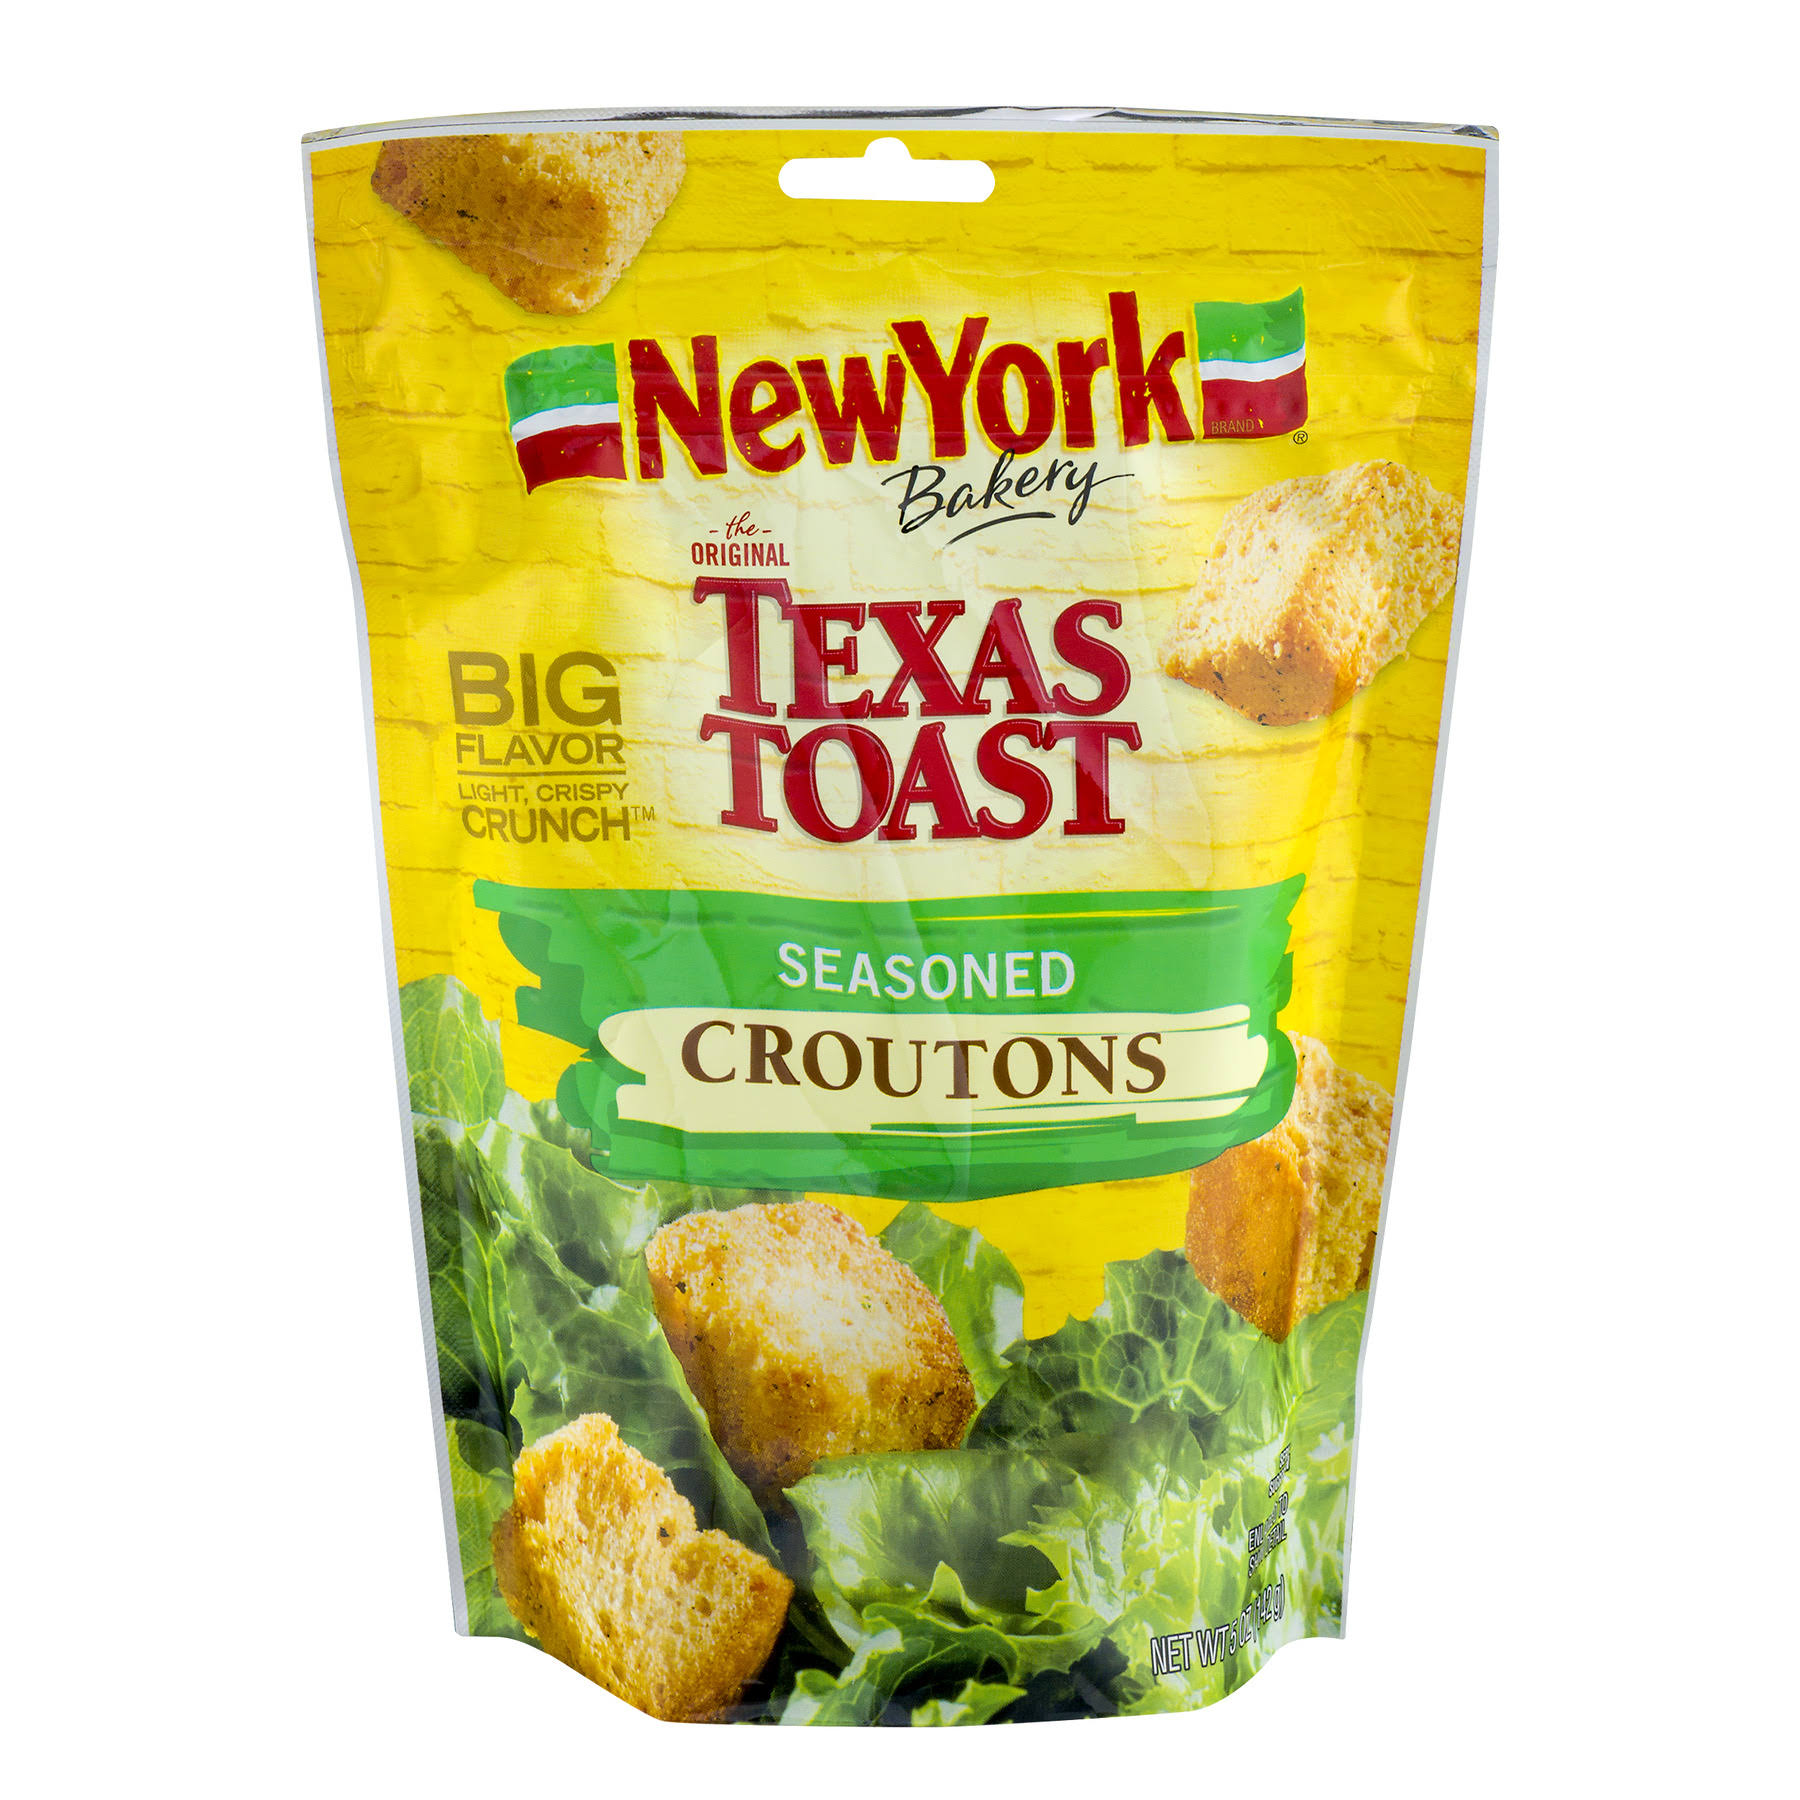 New York Bakery The Original Texas Toast Croutons - Seasoned, 5oz